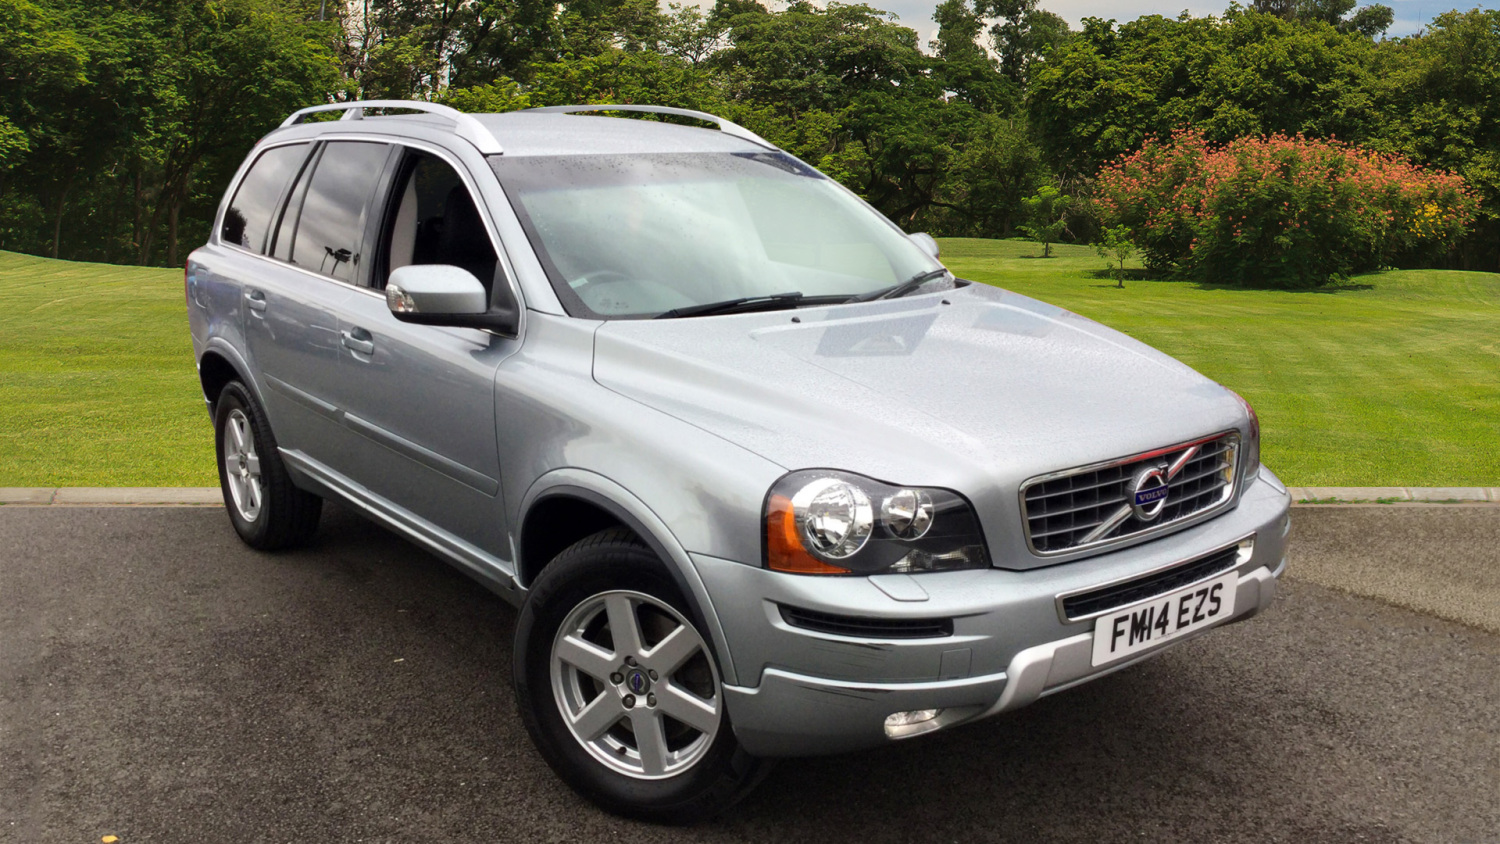 Used Volvo Xc90 2.4 D5 [200] Es 5Dr Geartronic Diesel ...